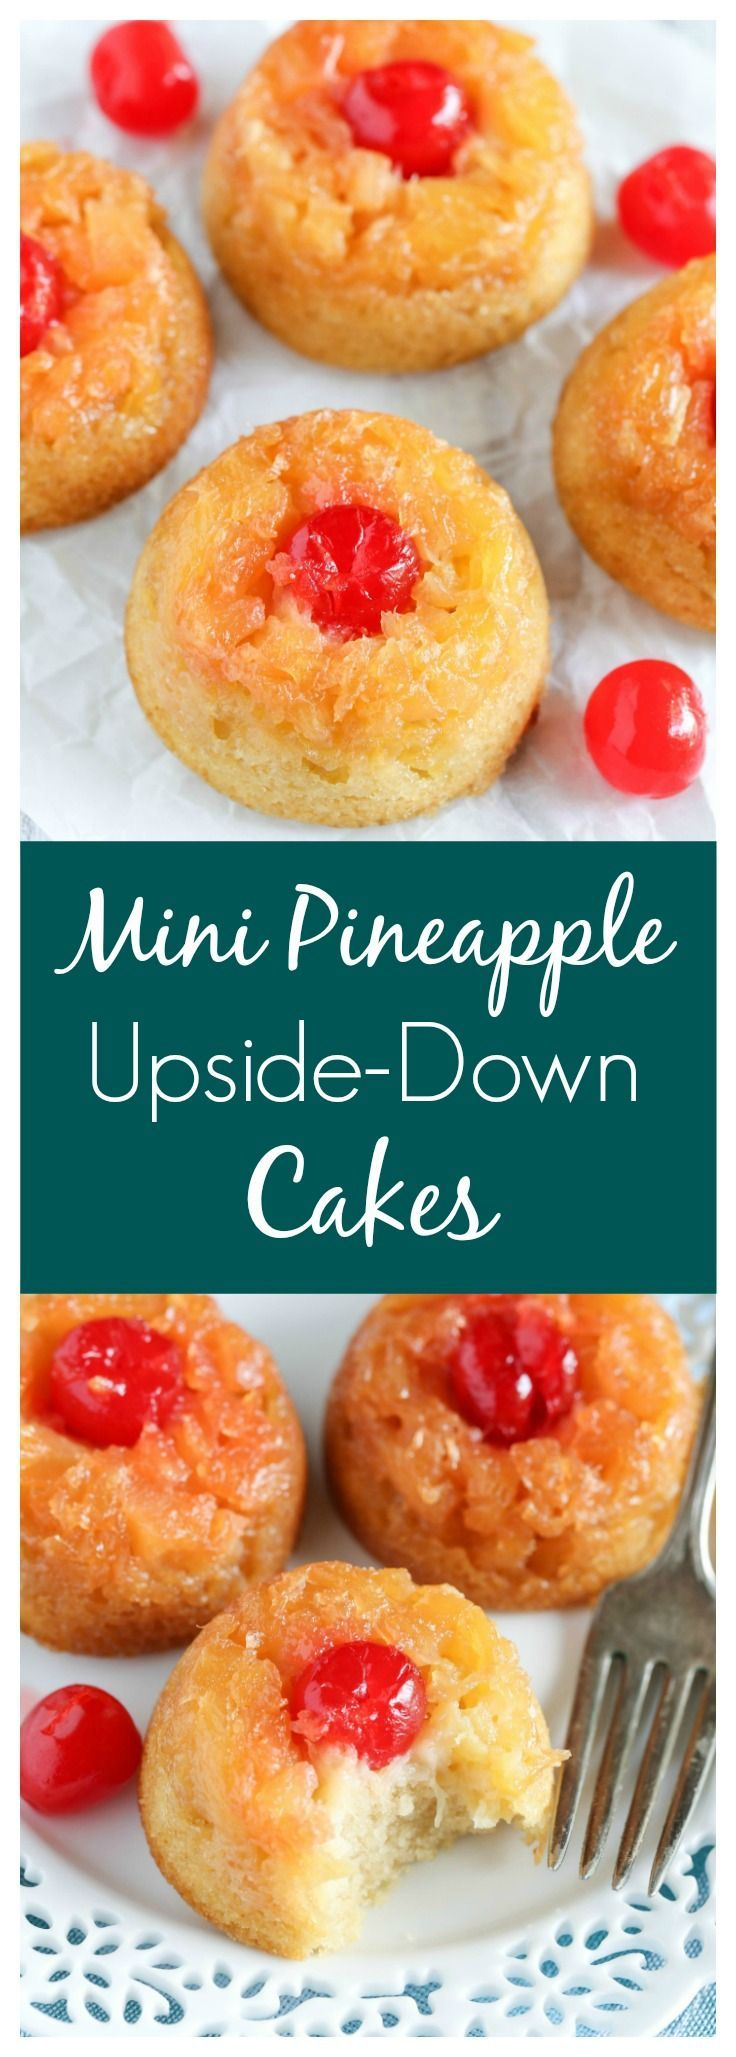 These Mini Pineapple Upside-Down Cakes are just like the classic dessert, but in mini form! Perfect for any time of year!